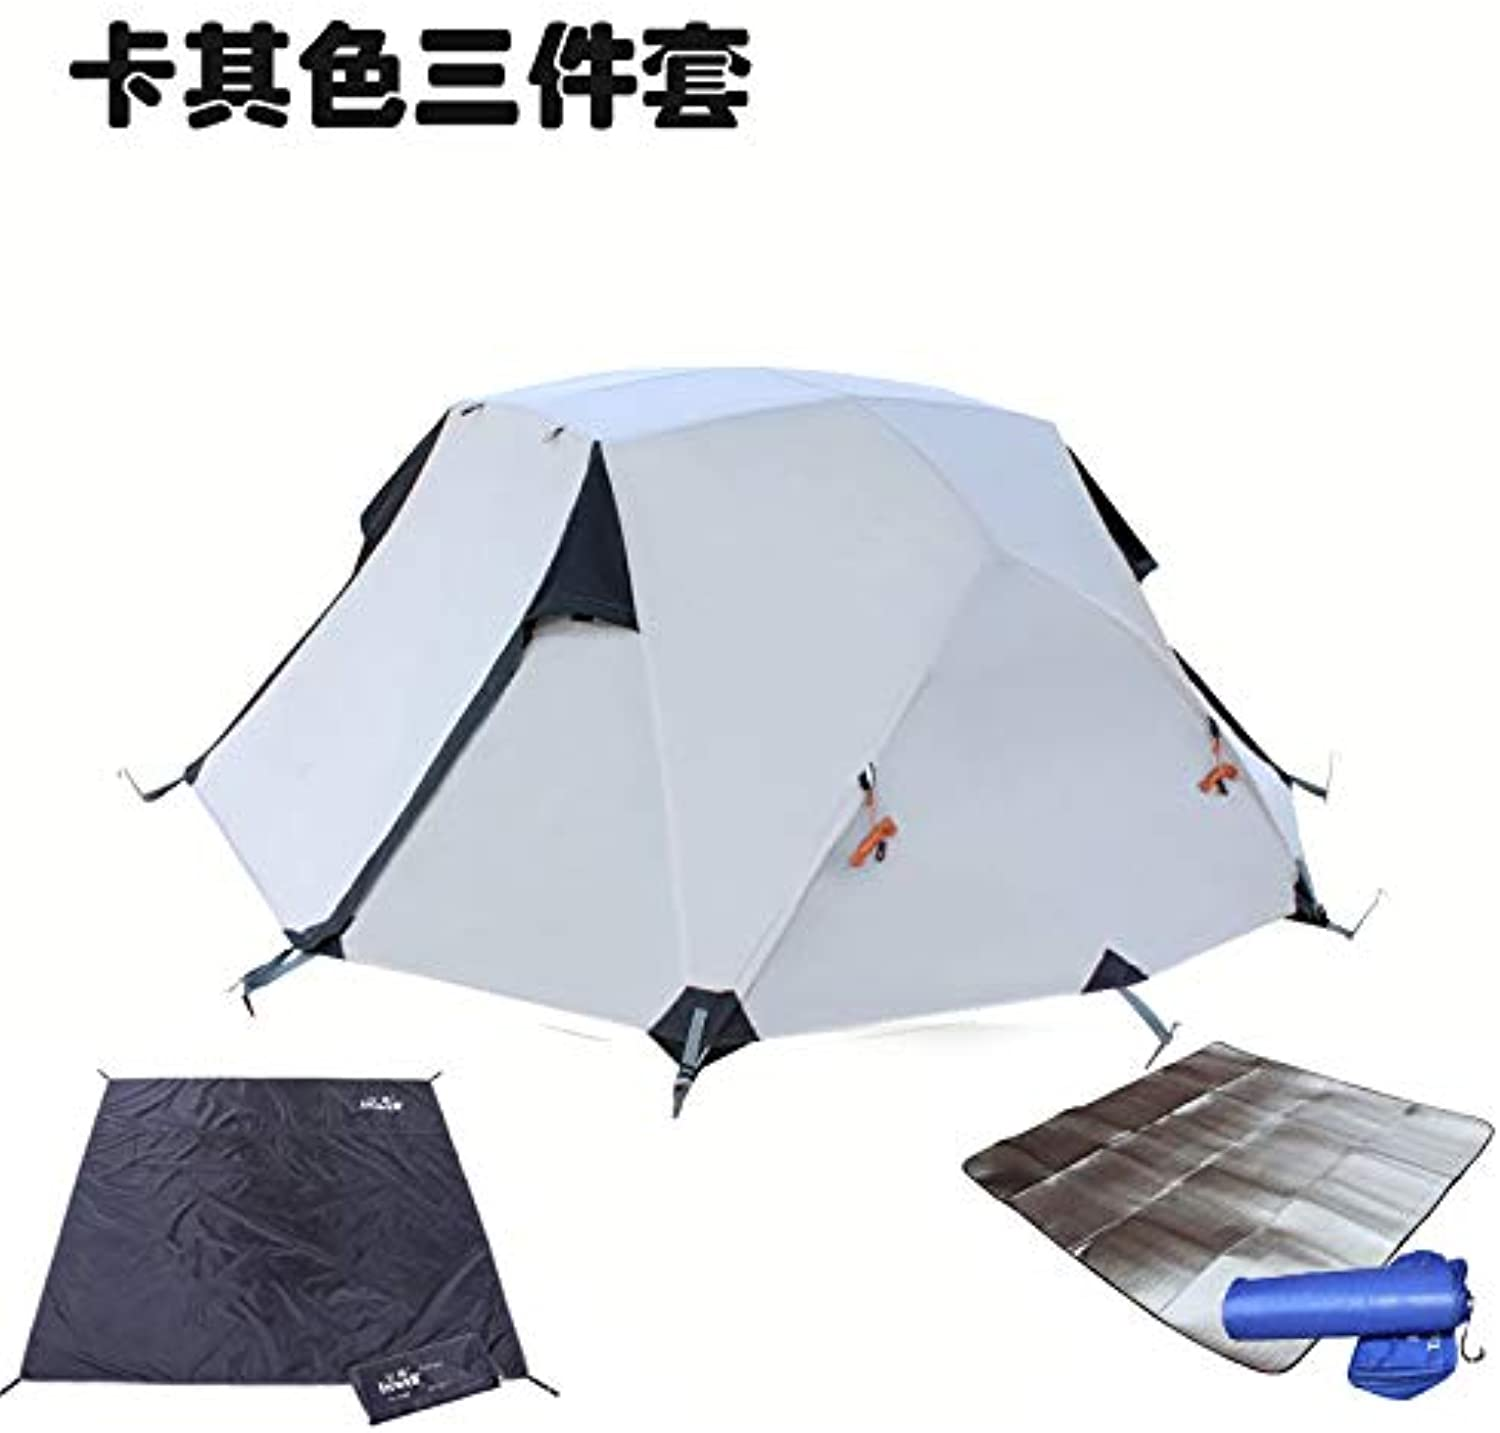 Male Wolf Outdoor Tent Camping Equipment Multiplayer Aluminum Pole Double bunk rain Seasons Winter Camping Field